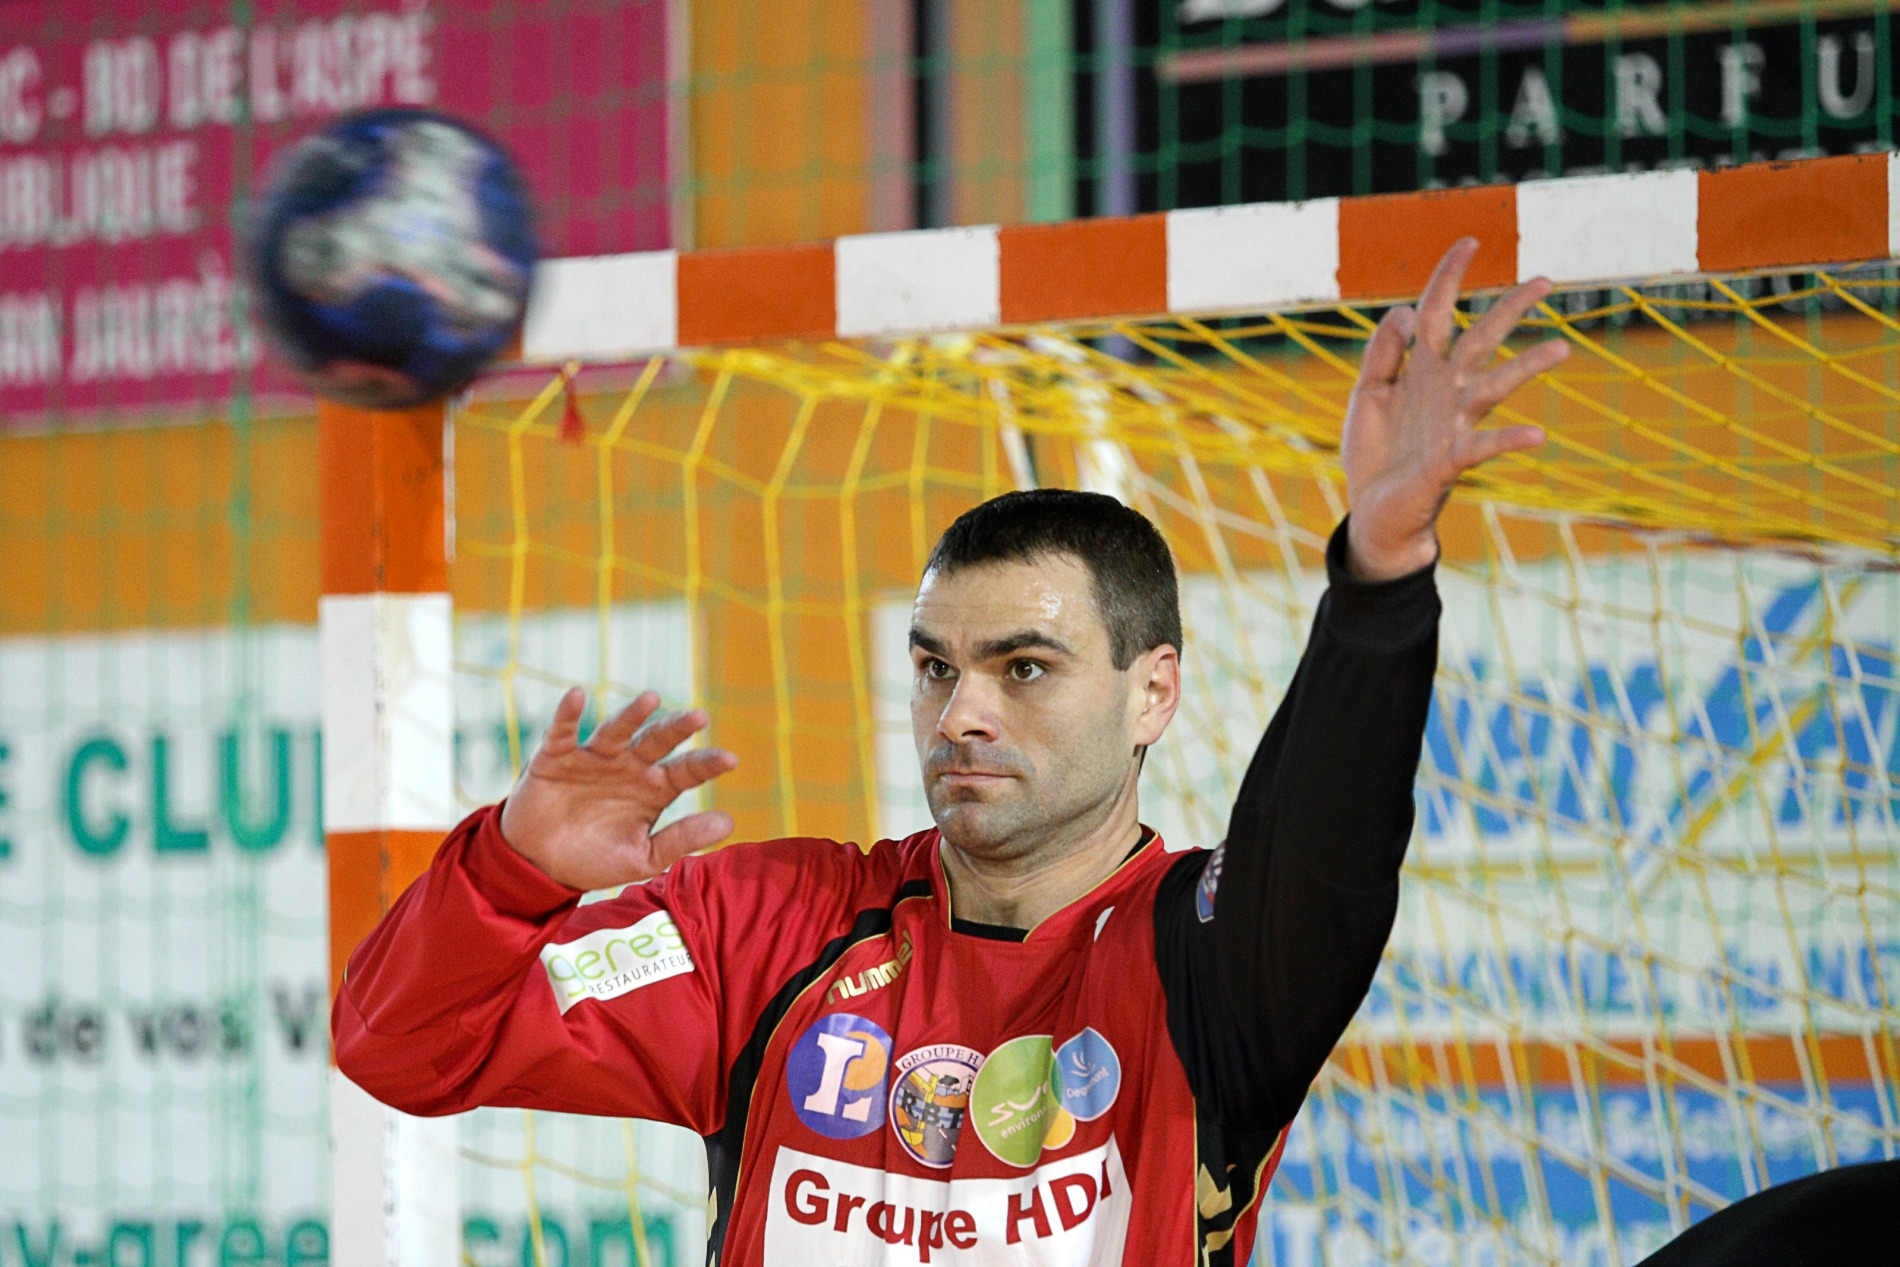 Slavisa Djukanovic | Handball Goalkeeper SRVHB by ML Terrier le 23 octobre 2010